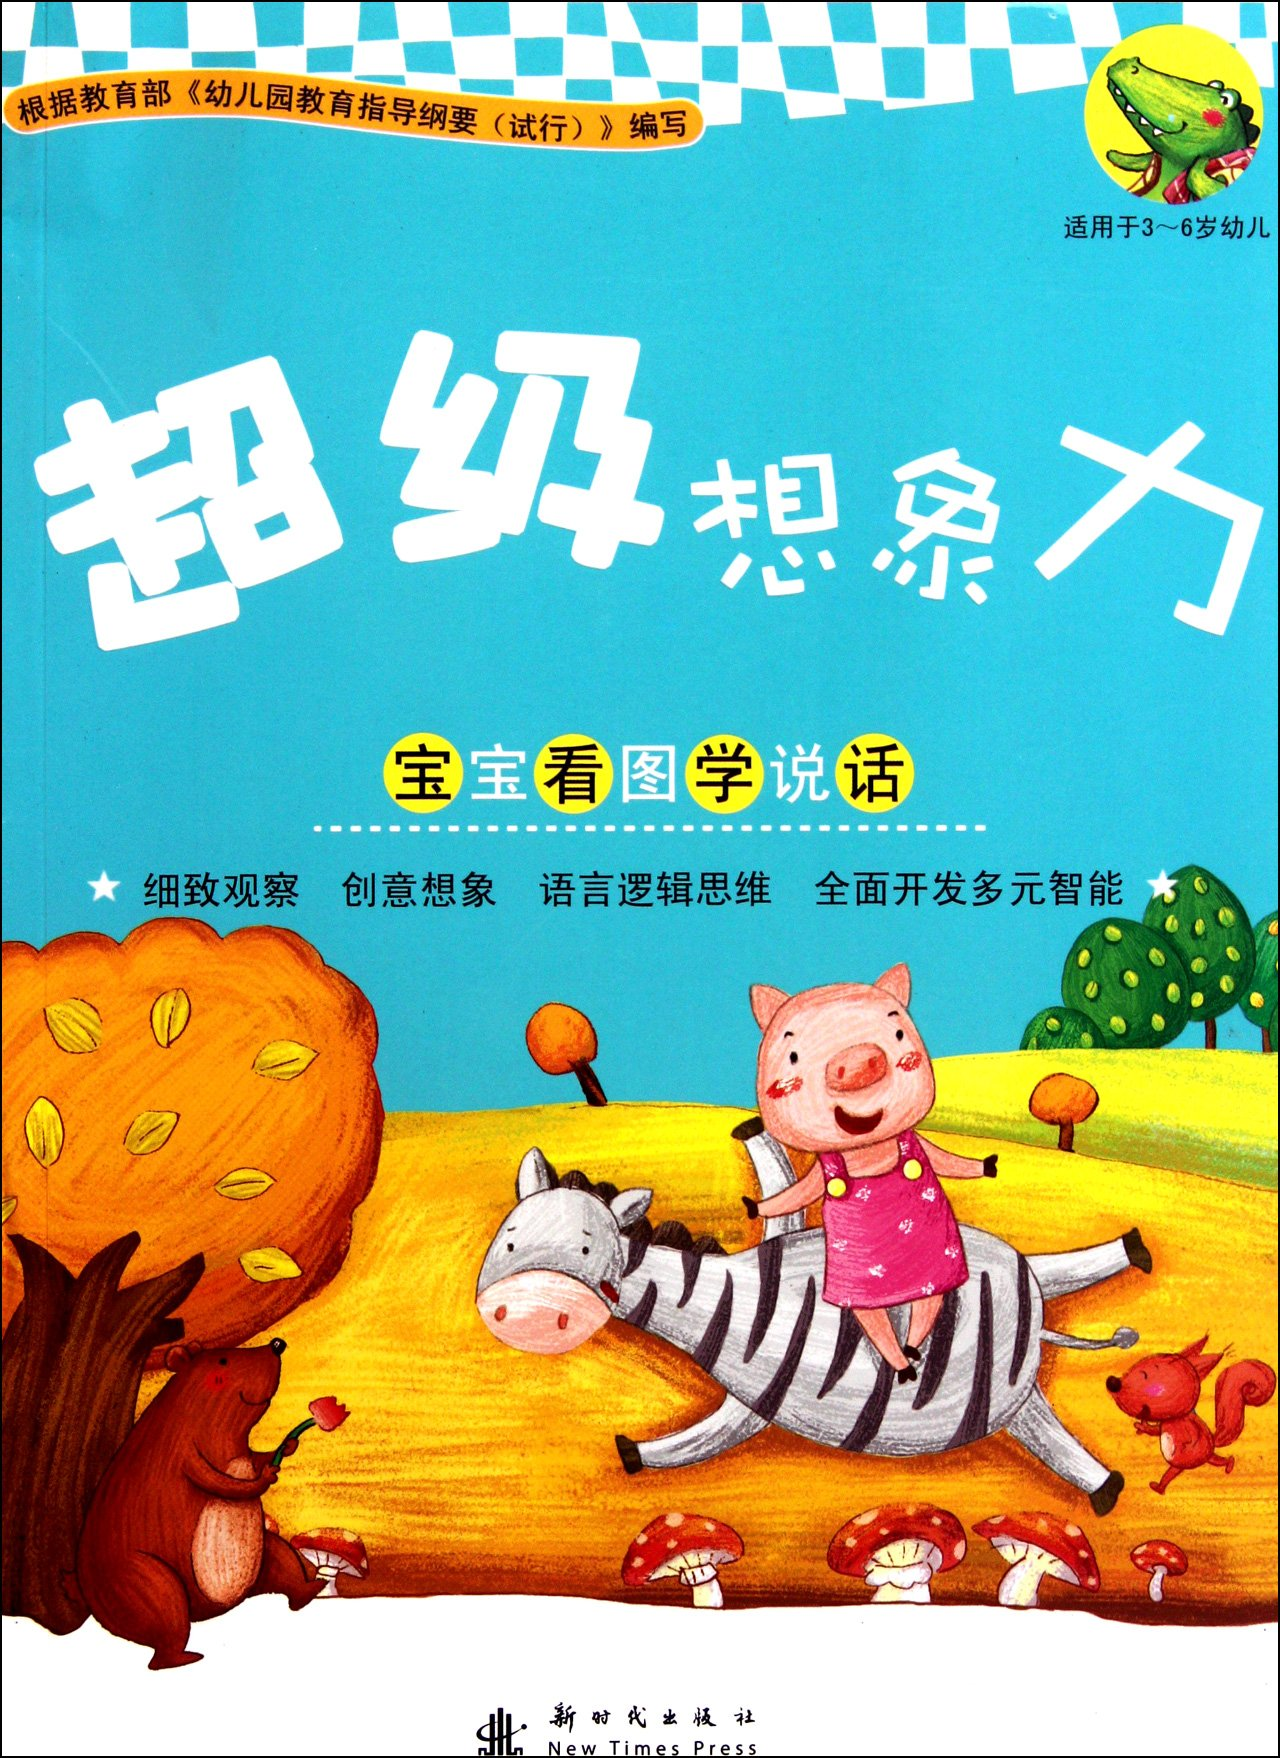 Read Online 3-6 Years Old - Super Imagination - Baby Learns to Speak according to Pictures (Chinese Edition) ebook